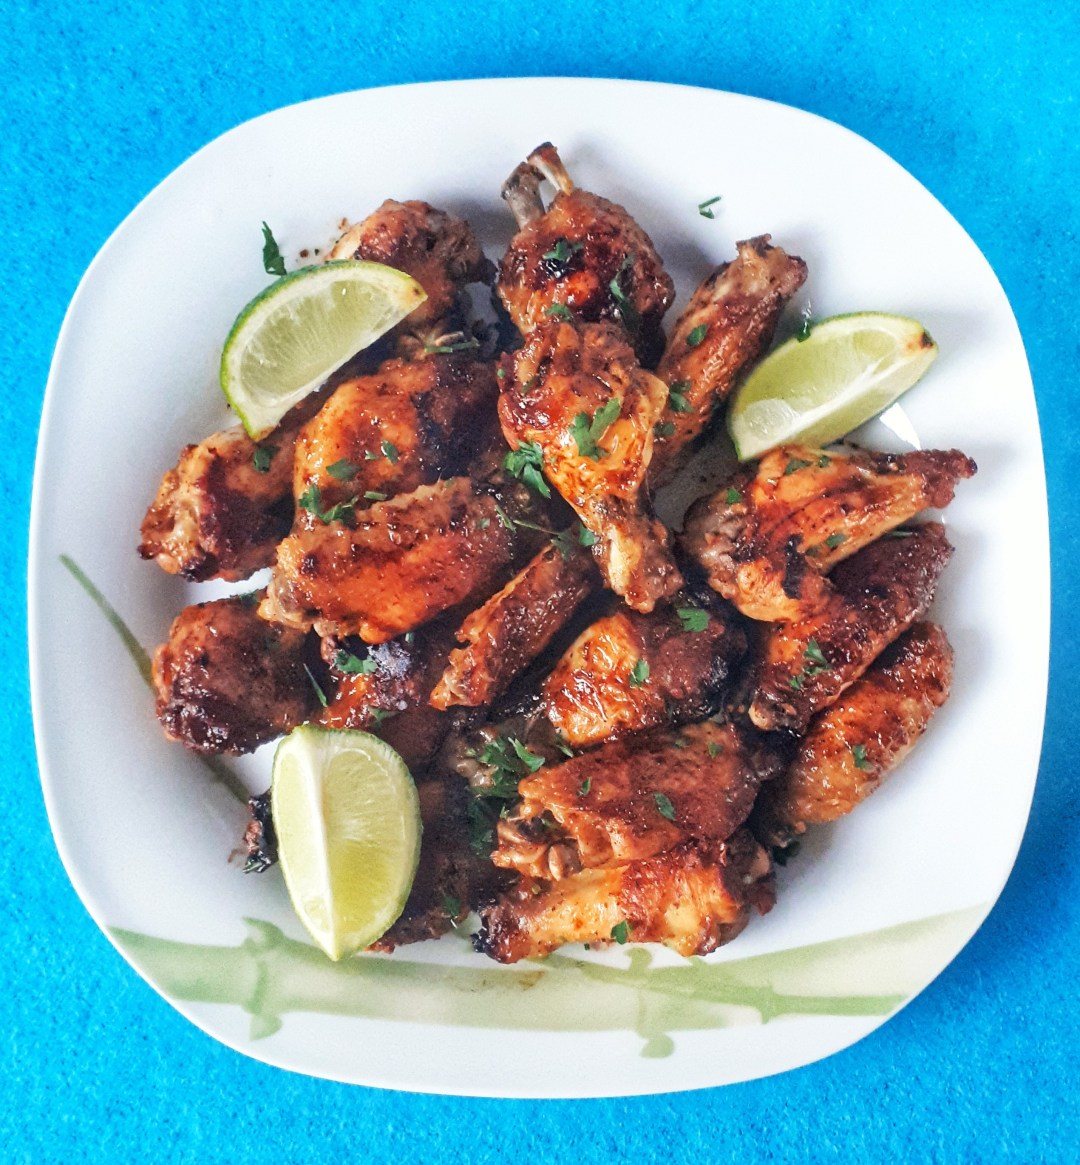 Baked Keto Chicken Wings are sweet, spicy and crispy. They are paleo and keto friendly. These wings are fantastic!!!